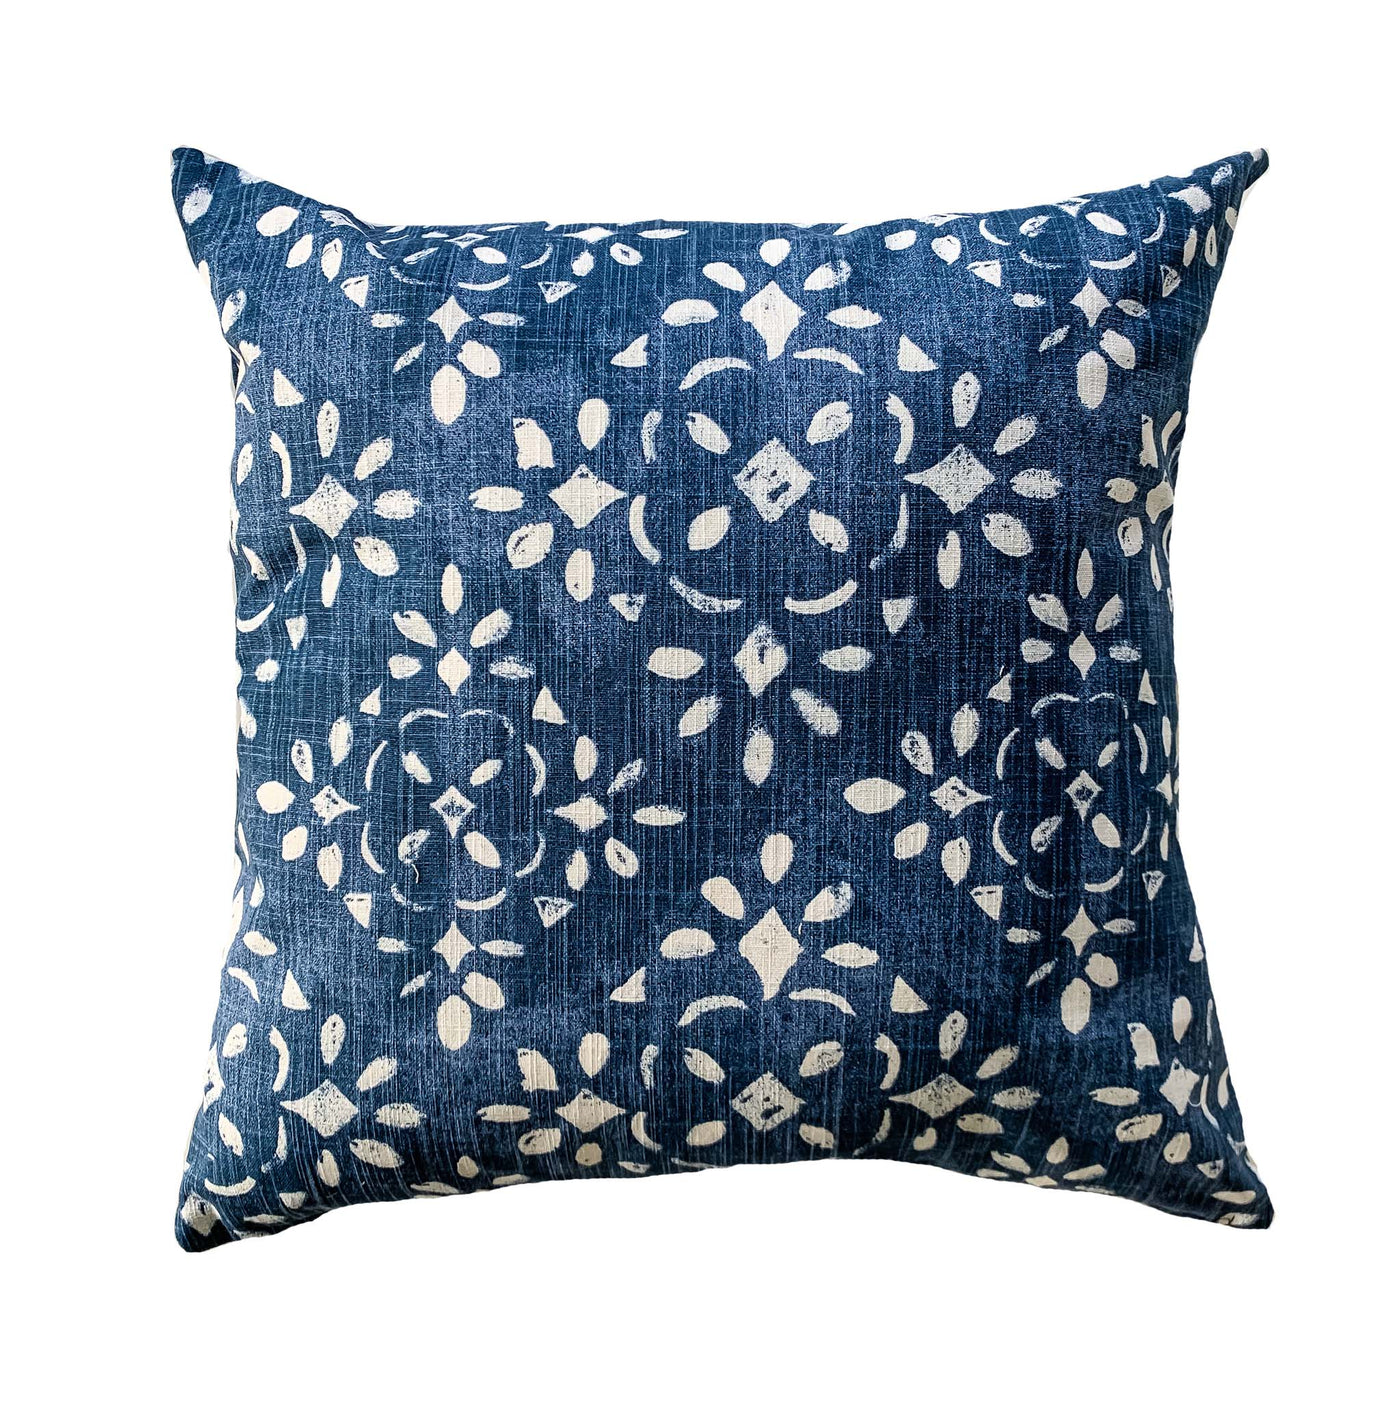 Stylish blue floral pillows - OLVA - Studio Pillows